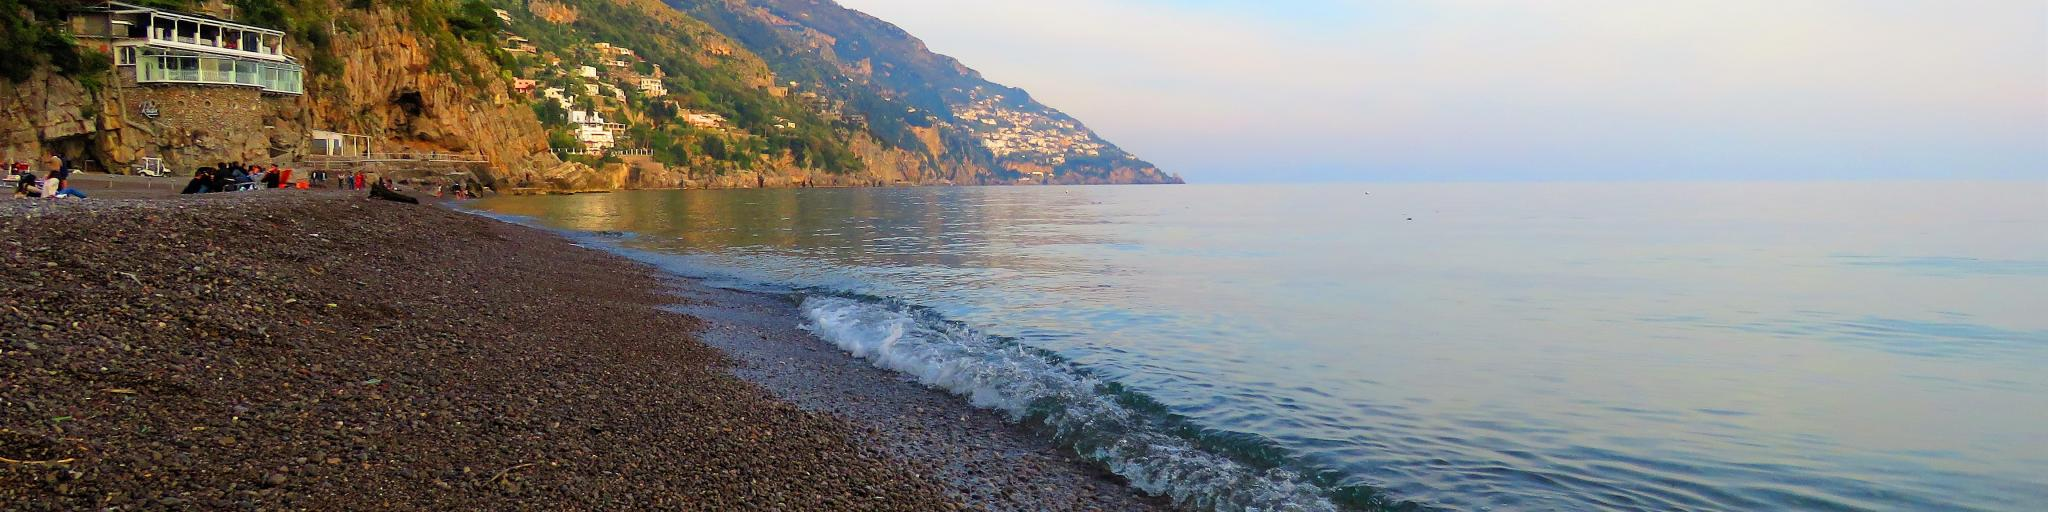 Waves lap against the pebble beach in Positano